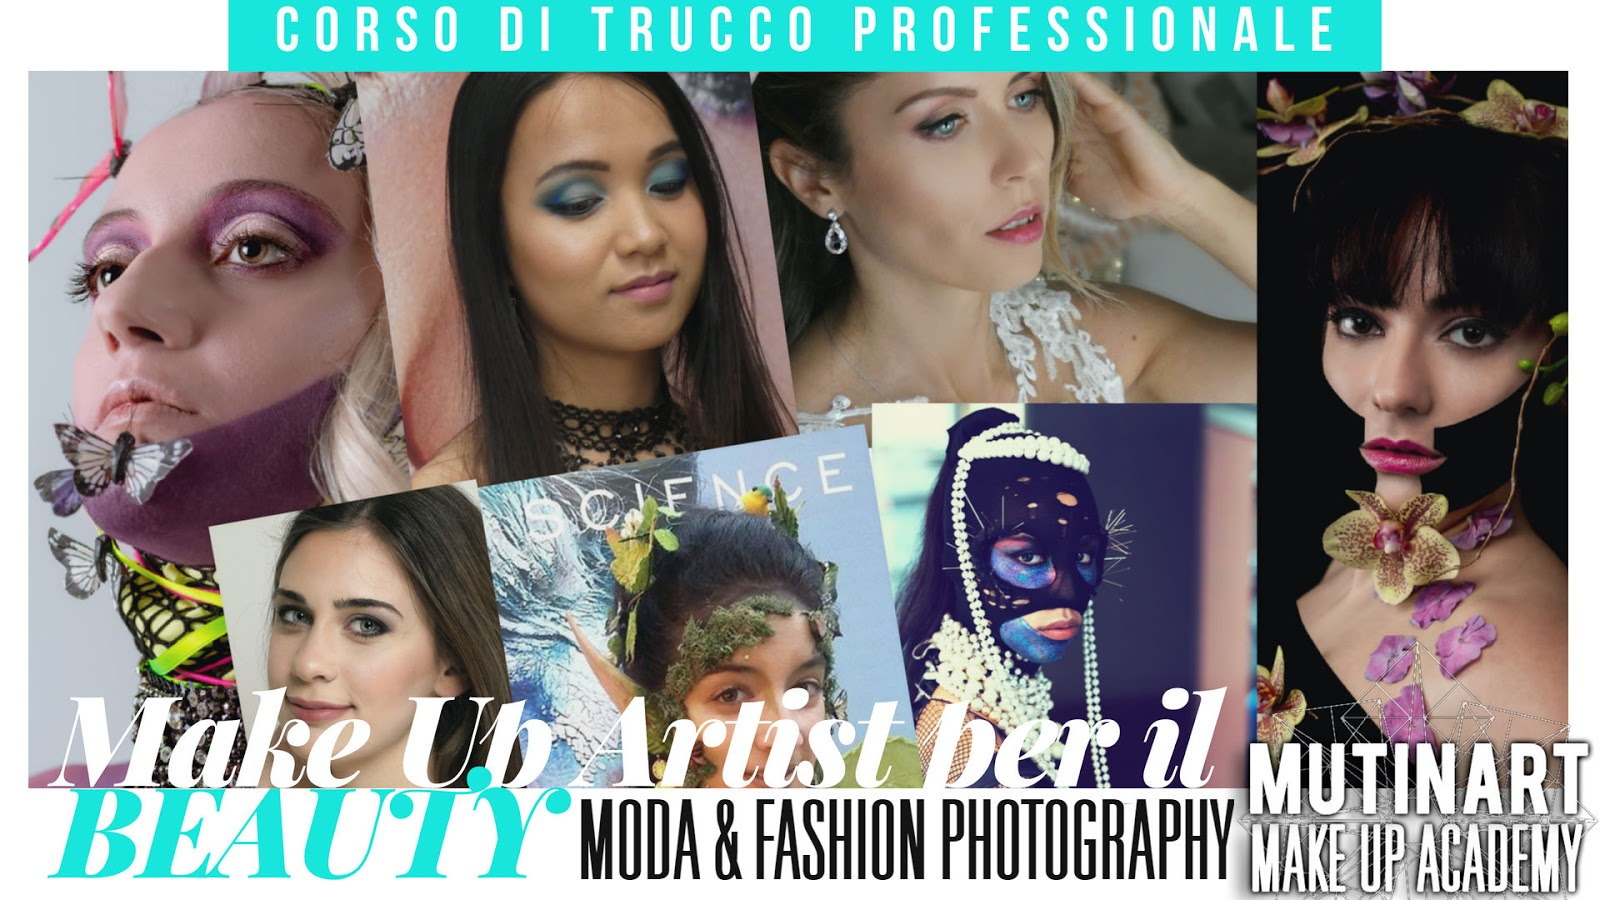 Corso di Trucco Annuale - Make Up Artist per il Beauty, la Moda e la Fashion Photography - Modena